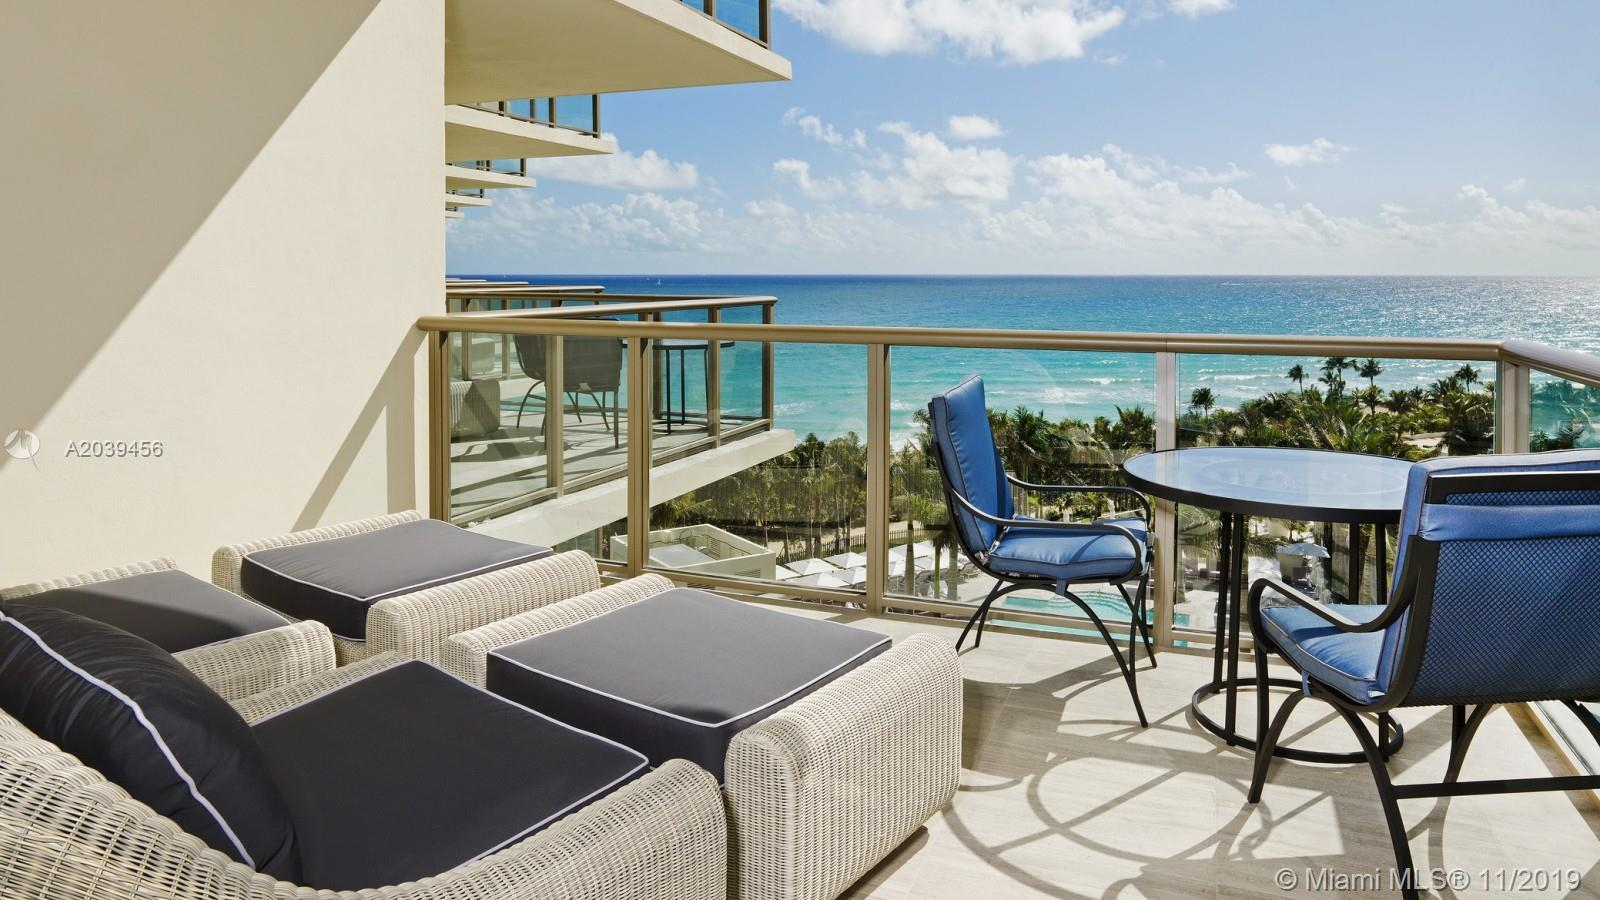 Photo of 9703 COLLINS #1206, Bal Harbour, Florida, 33154 - TWILIGHT BEACH VIEW